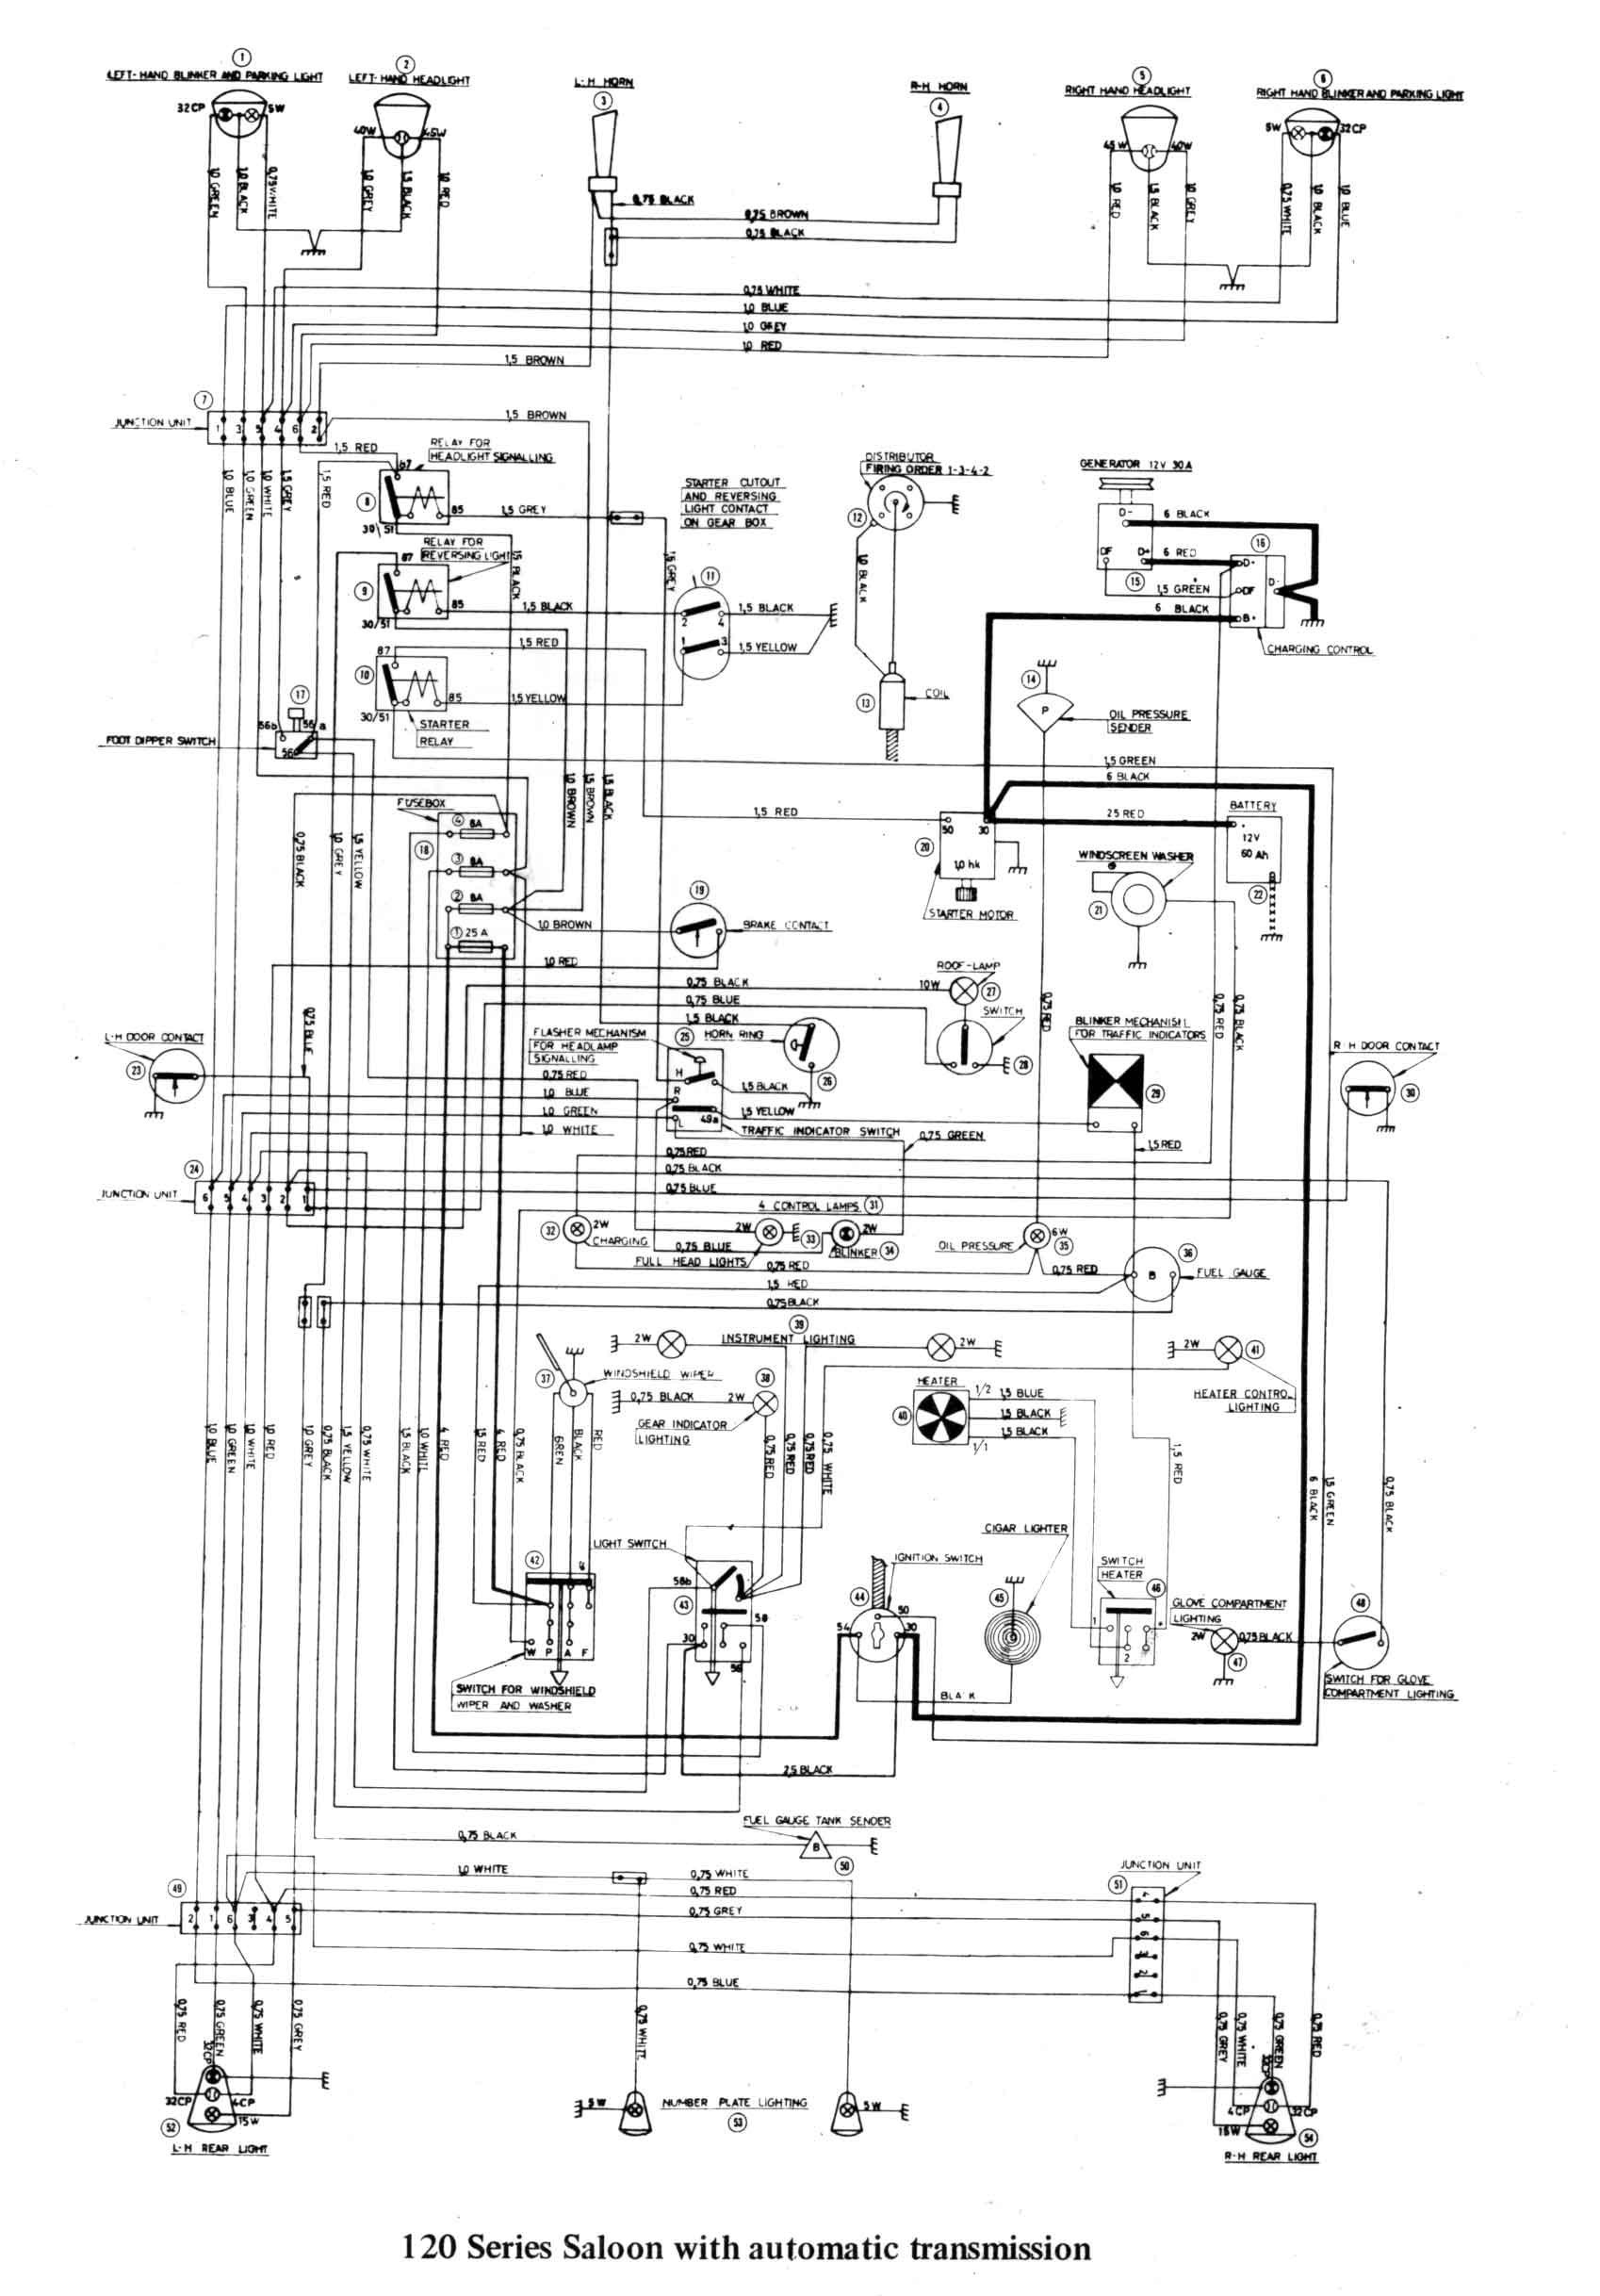 Porsche 911 Engine Diagram Porsche 964 Engine Wiring Diagram Worksheet and Wiring Diagram • Of Porsche 911 Engine Diagram